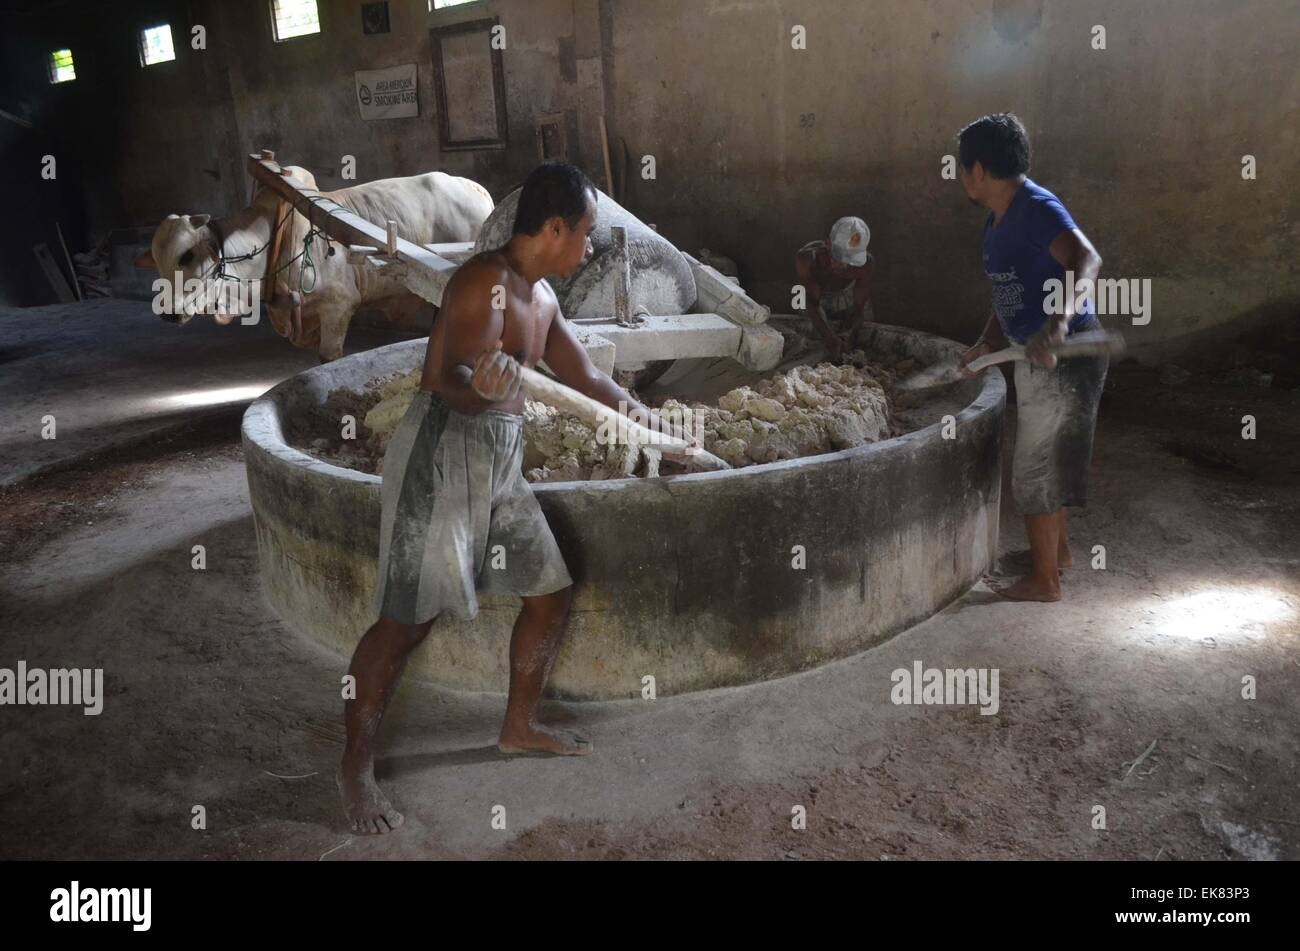 Yogyakarta Indonesia 8th Apr 2015 Workers Grind Flour To Make Mie Lethek